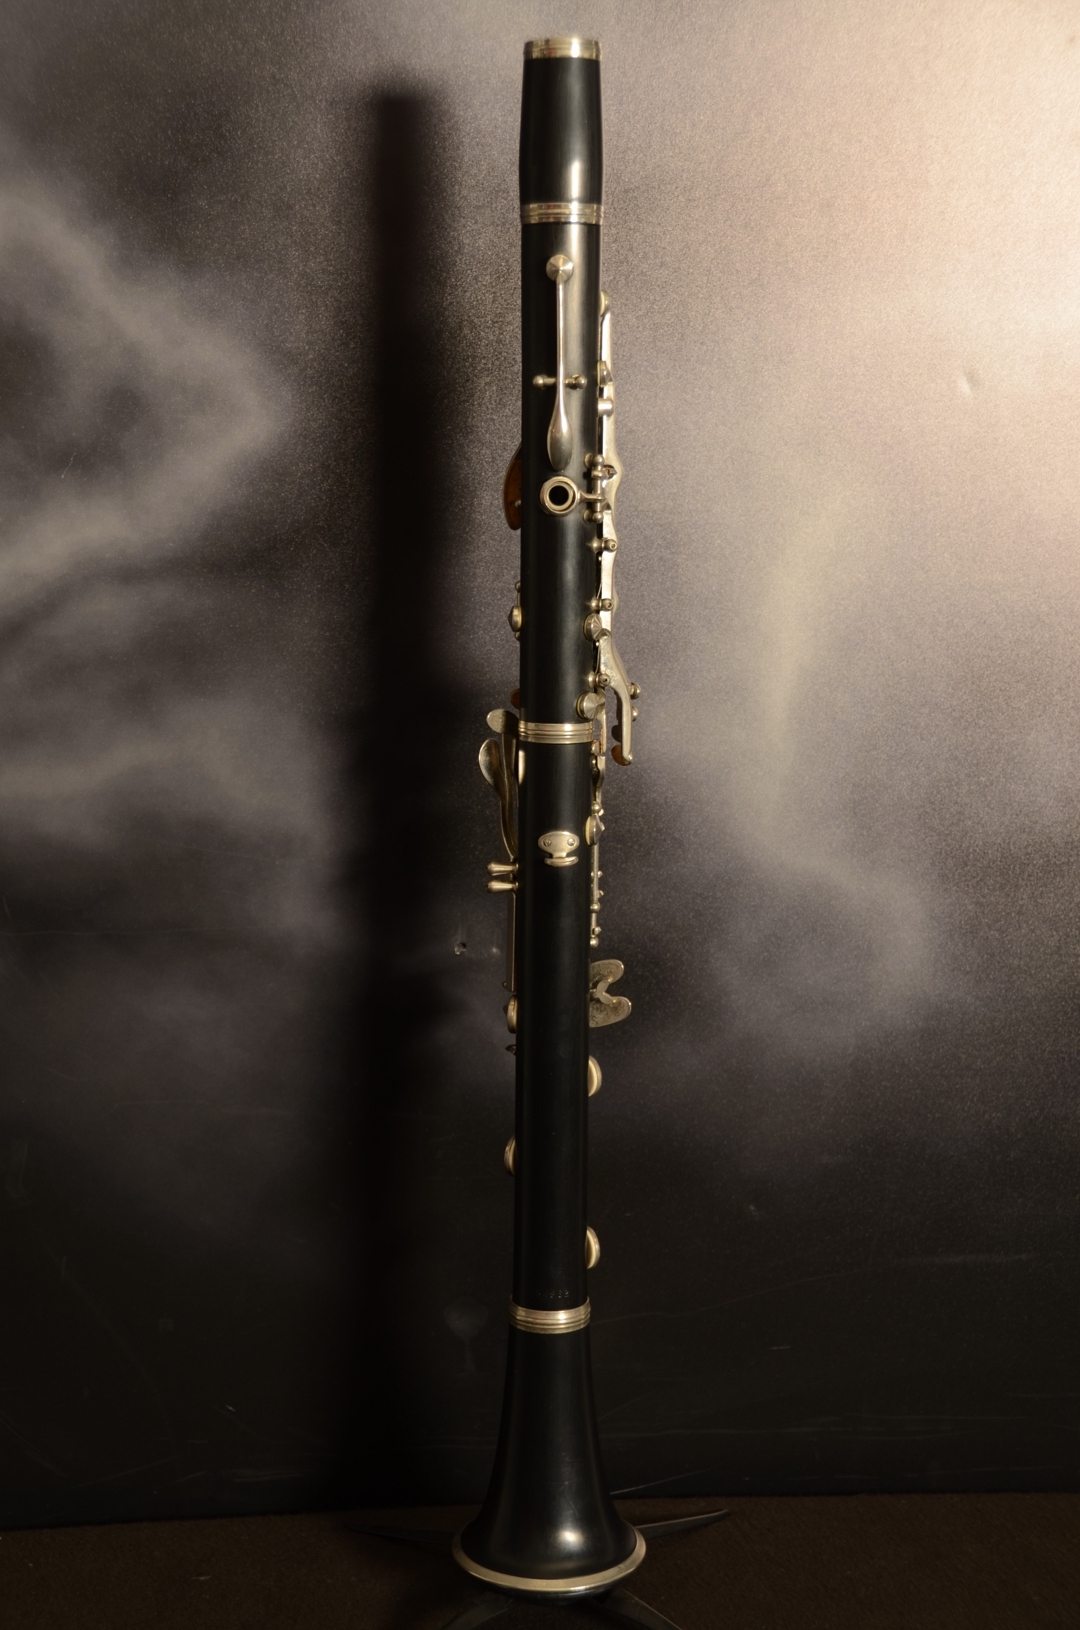 Artley - 28S Clarinet With Original Hardshell Case